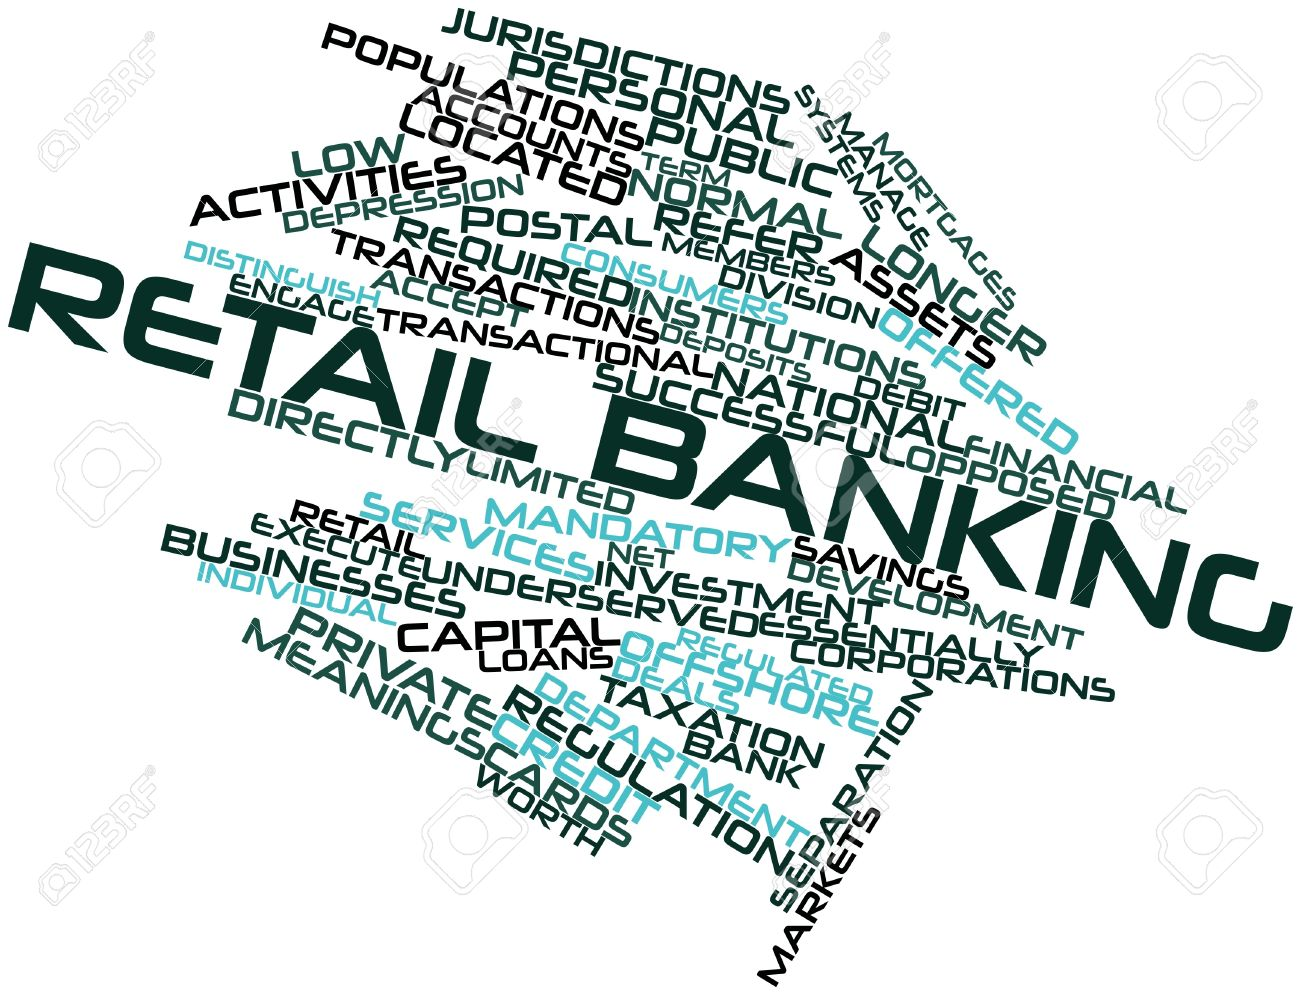 on online courses banking ica job guarantee why banking remains the most sought after jobs